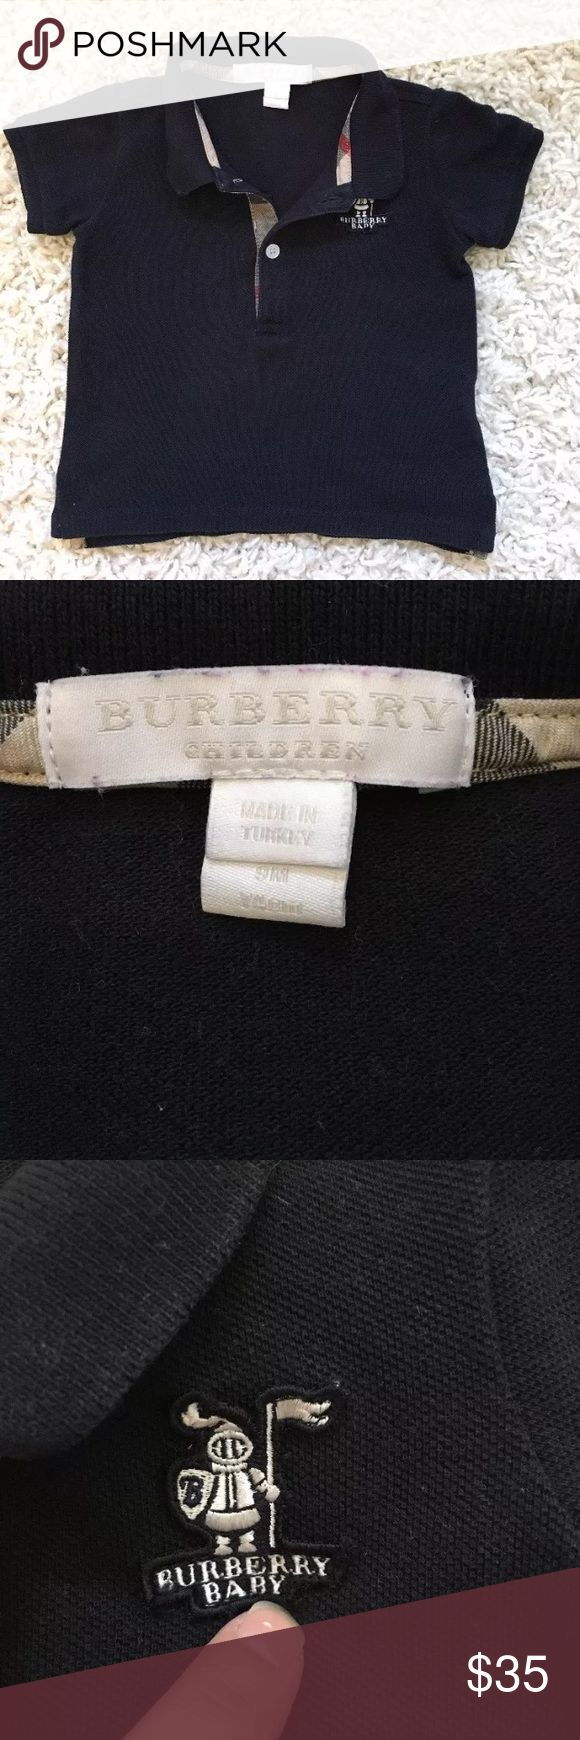 Burberry baby navy polo 6-9 months Worn couple times. No stains. Says sz 9 but more like 6-7months. Sightly faded from washing Burberry Shirts & Tops Polos